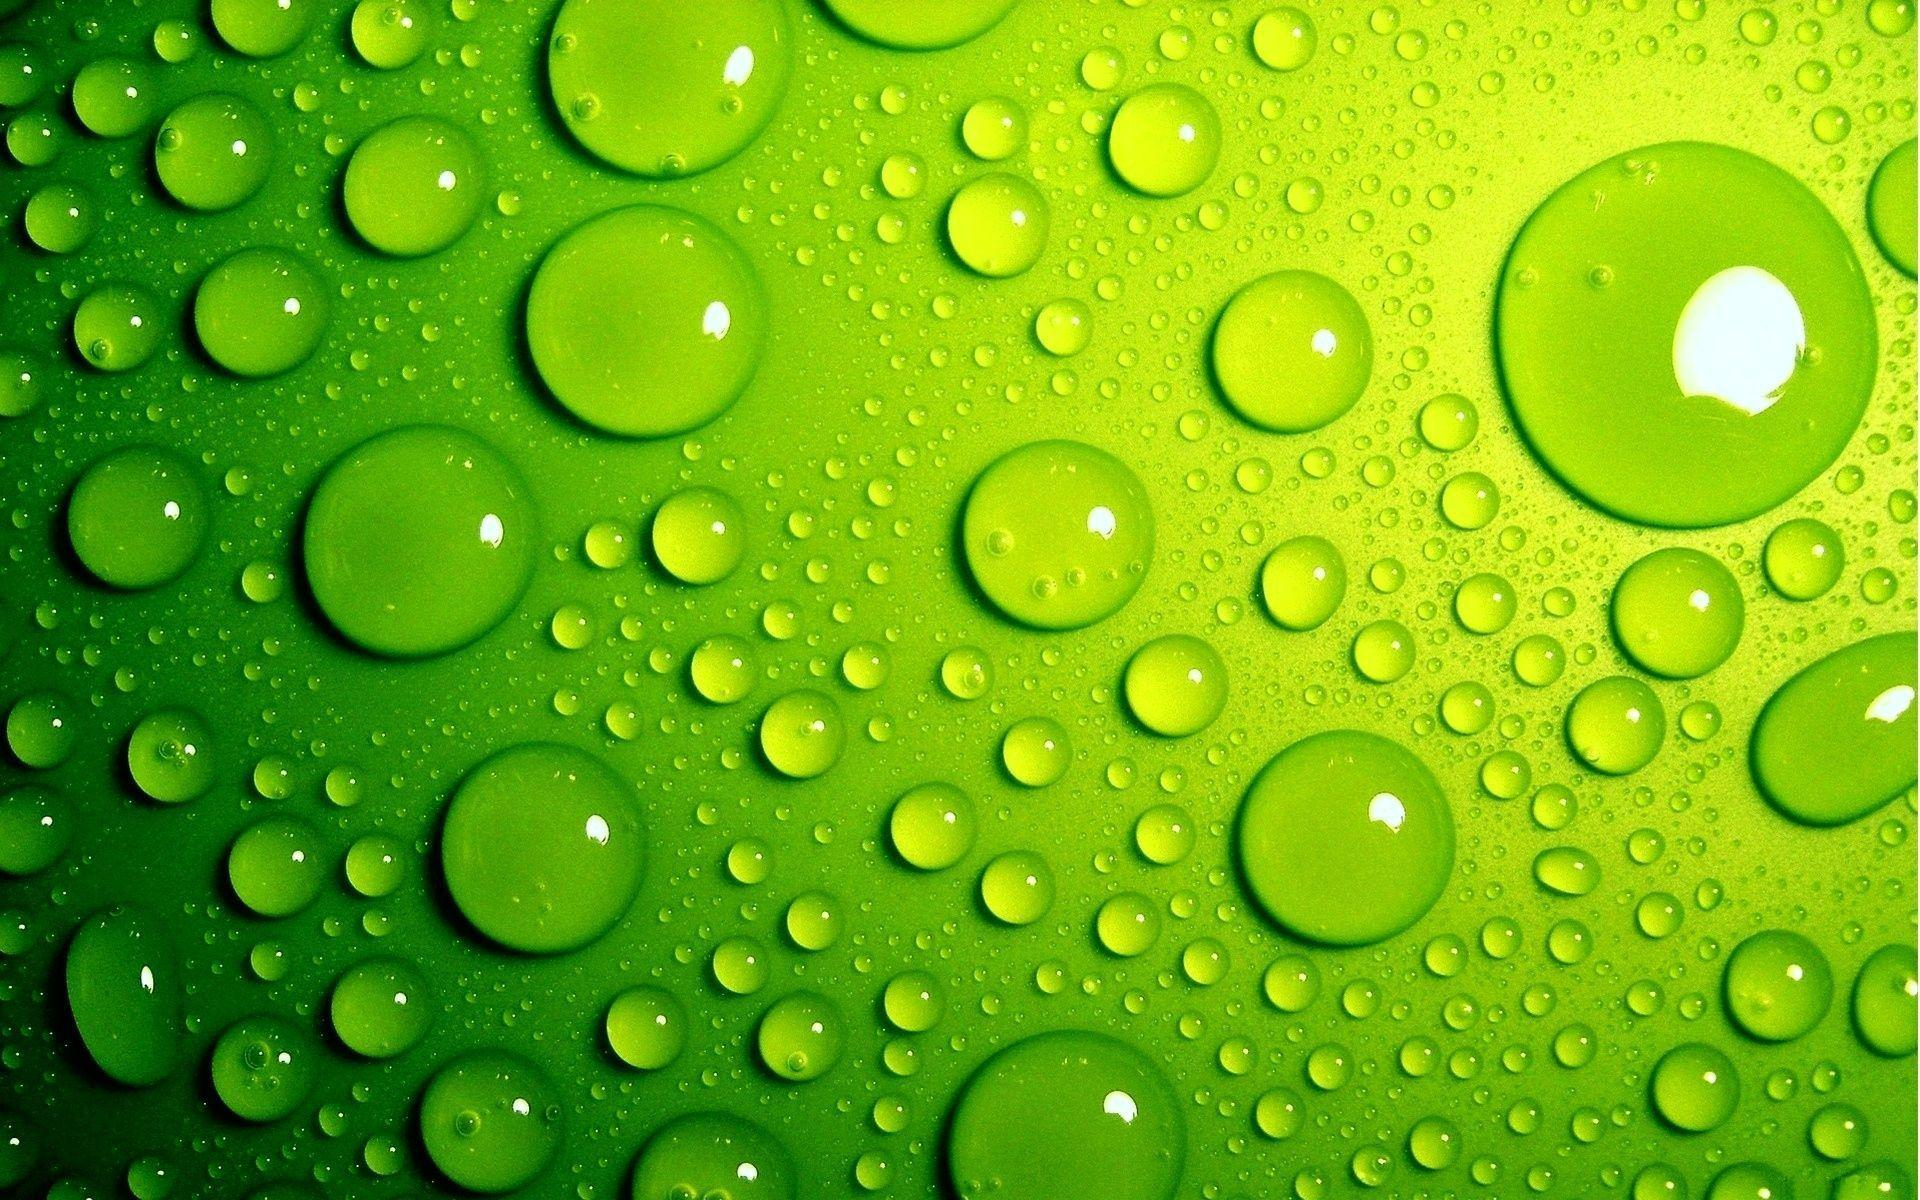 hd wallpapers water drops - photo #28